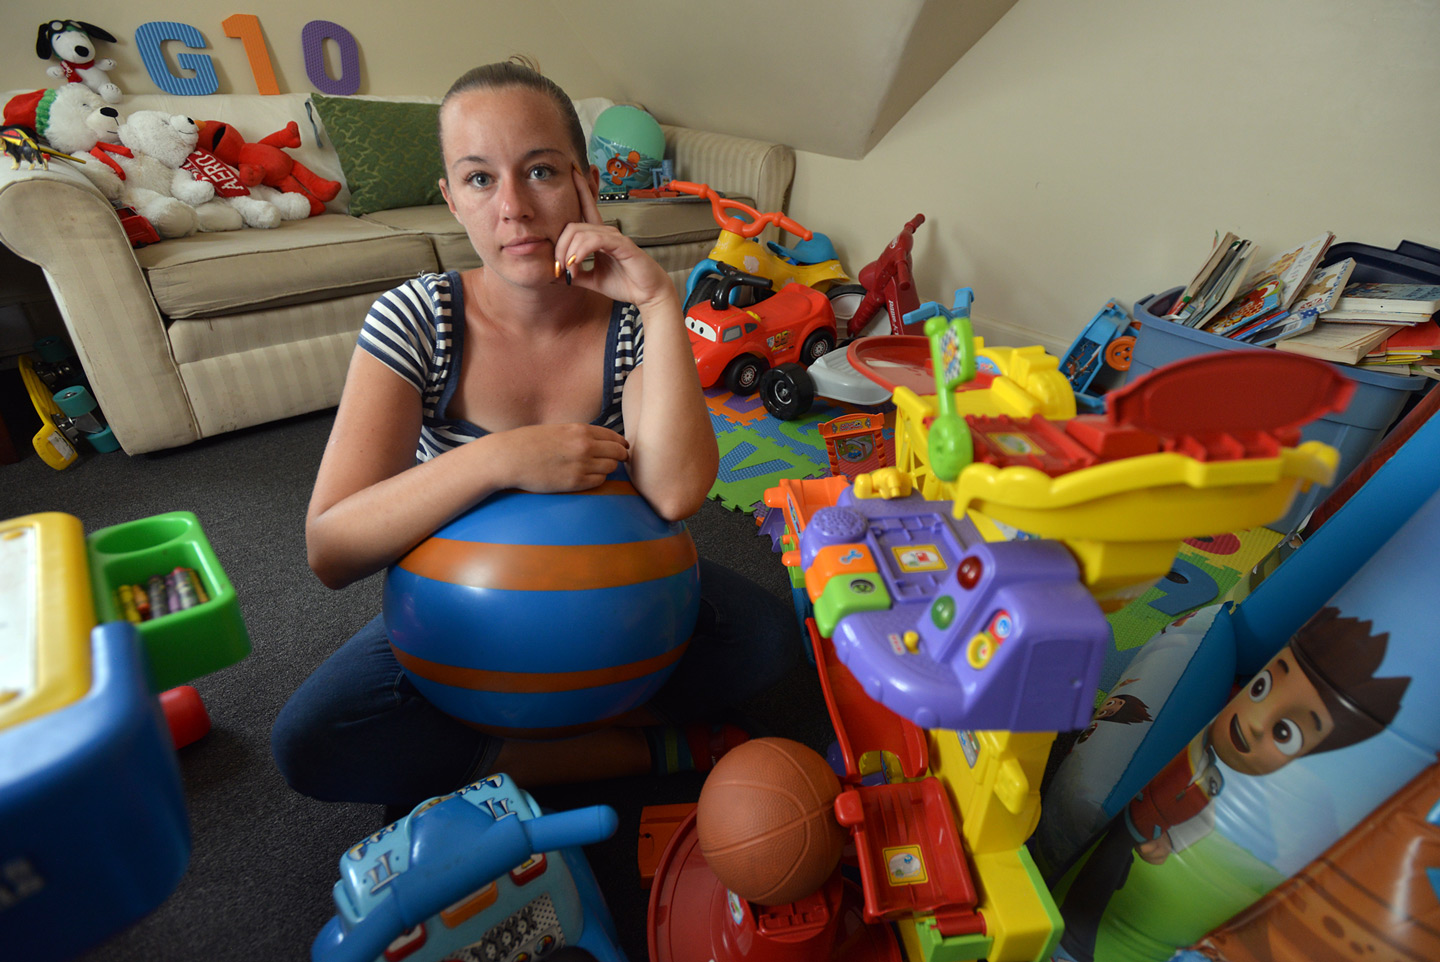 Sitting with her son Giovanni's mostly unused toys, Kayla Duggan is reminded yet again of what her heroin addiction has cost her. Her son is in foster care and, like thousands of other addicted moms, Duggan's attempts to regain custody are thwarted both by her addiction and a lack of the one kind of treatment that could help her recover. ALLAN JUNG/ MetroWest Daily News